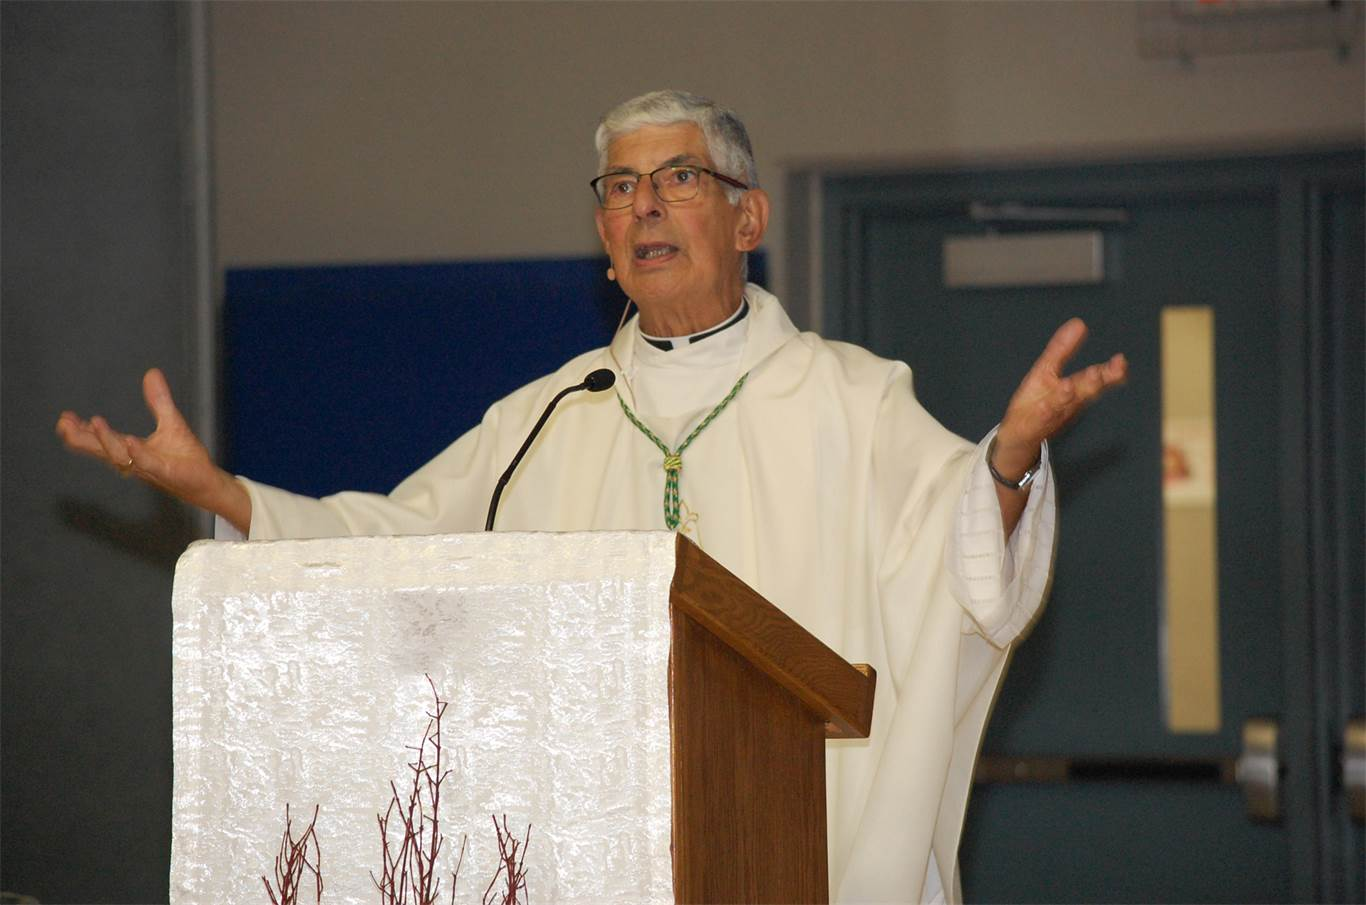 Likening the pilgrimage to the day's reading in which people are invited to a wedding, presiding mass celebrant, Bishop Tonnos told students,